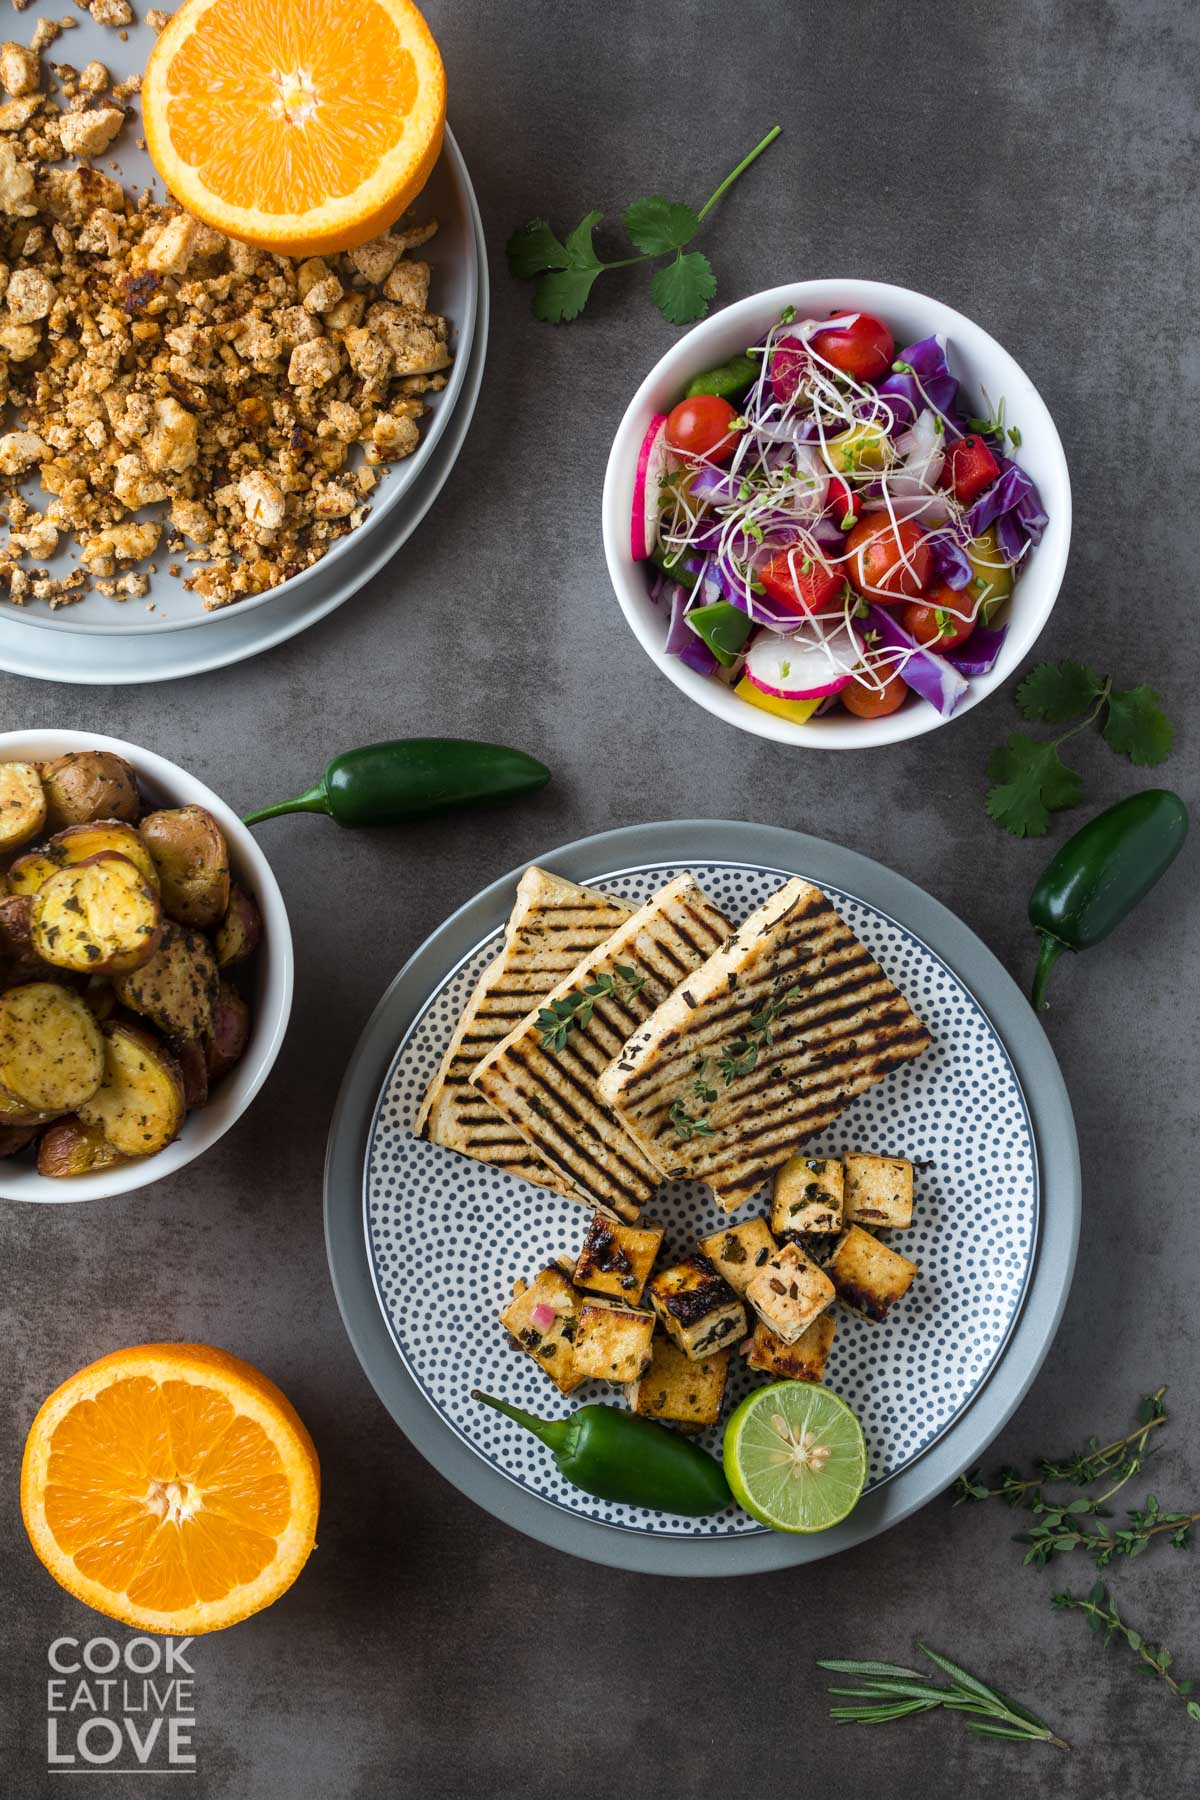 All the tofu marinades and different ways to cook tofu on plates and bowls